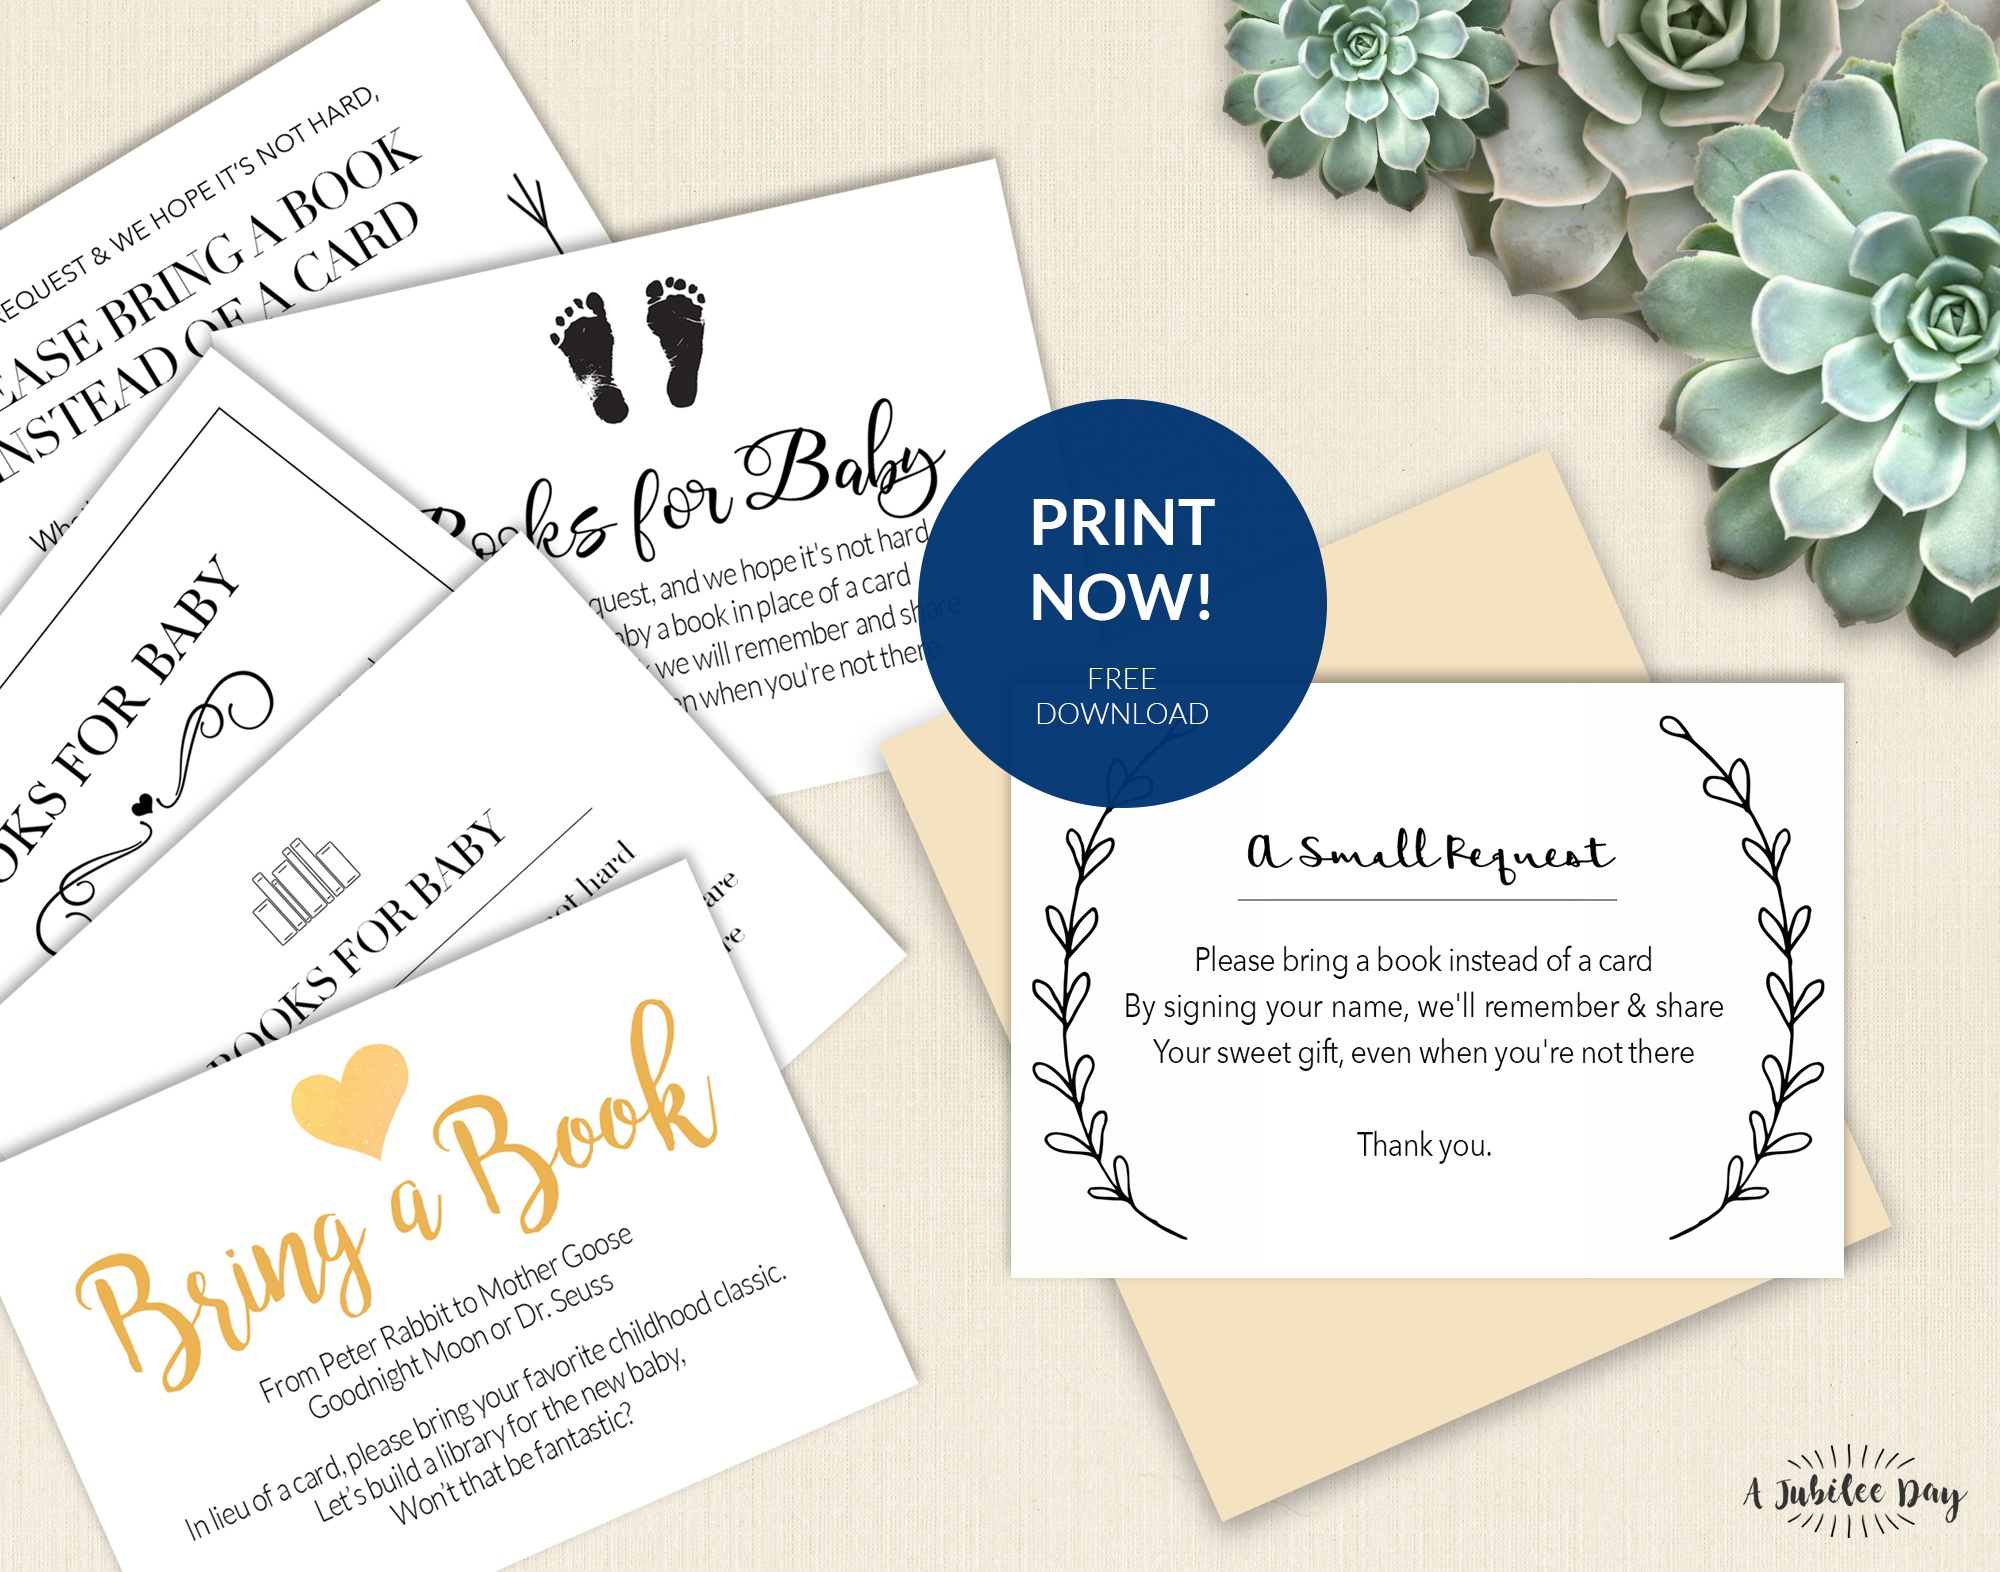 Bring A Book Instead Of Card (Free Printable!) - A Jubilee Day - Free Printable Registry Cards